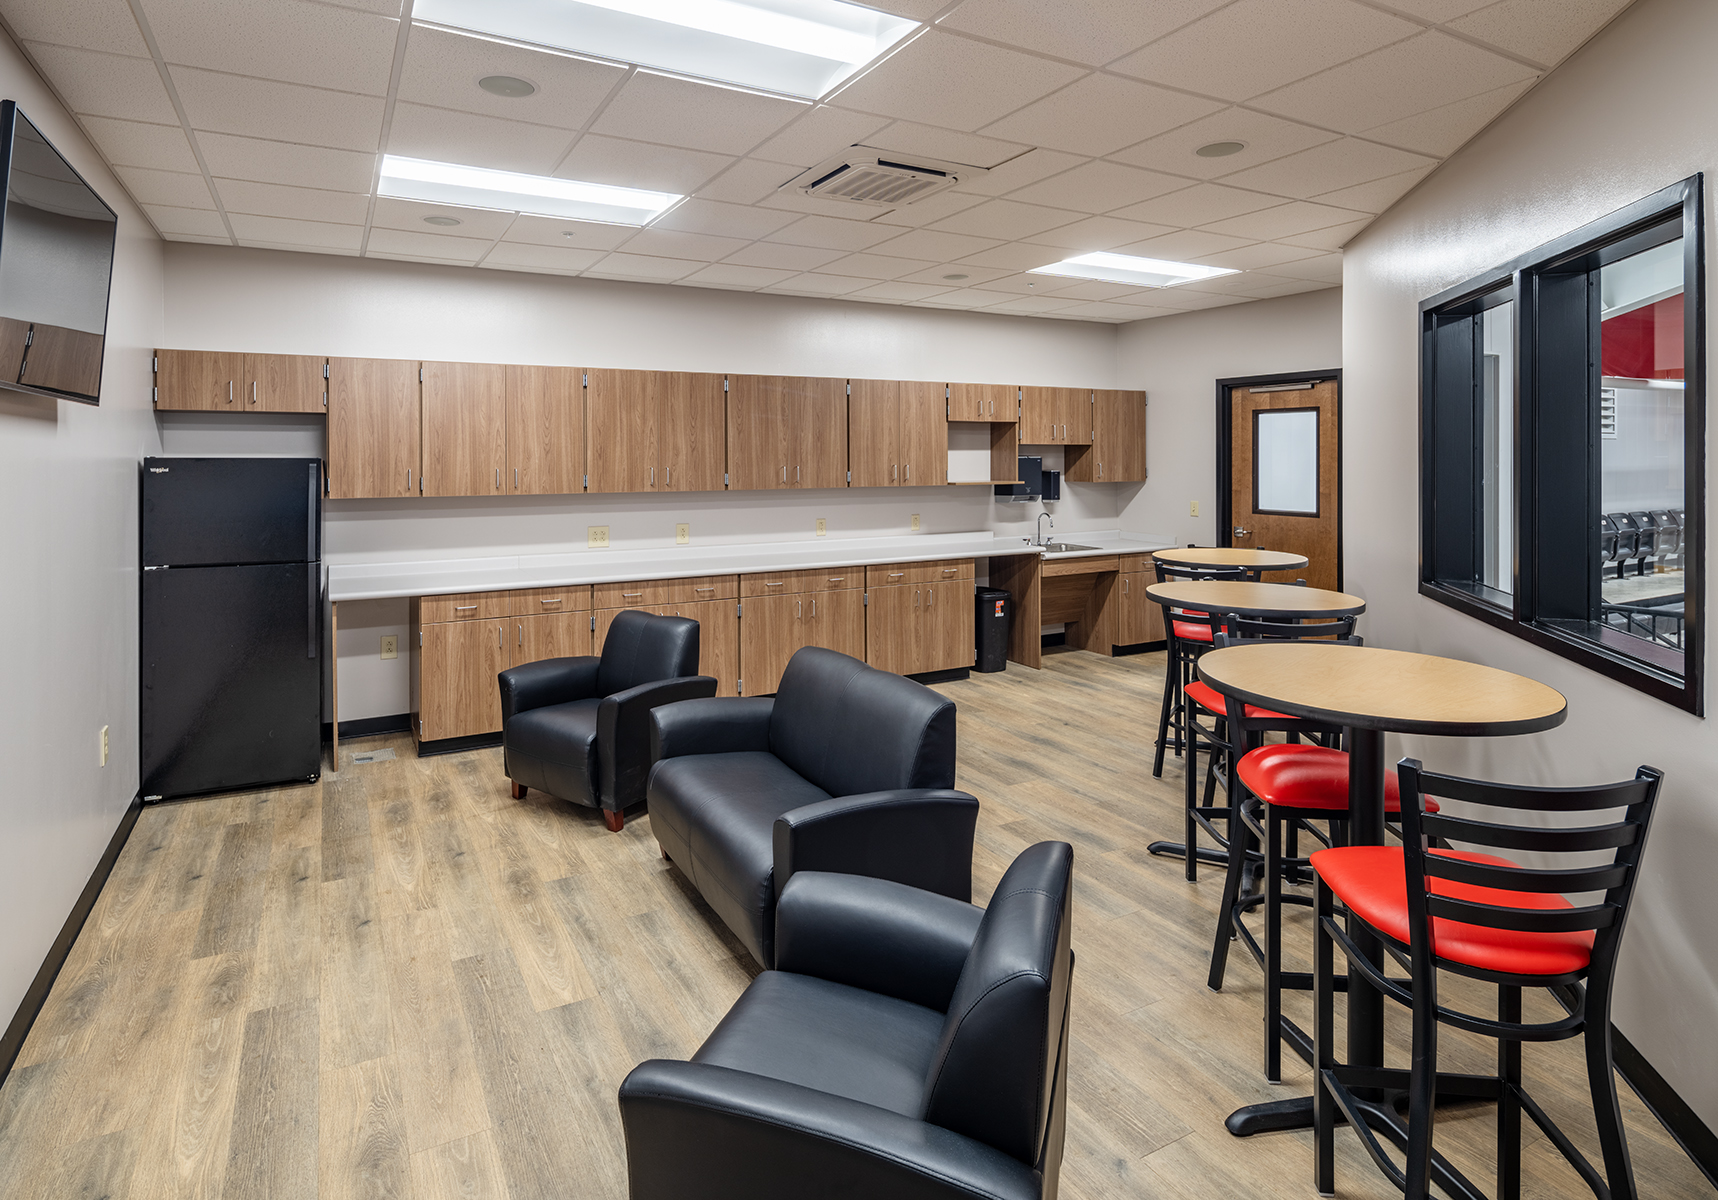 Clarendon-Holly Grove School District Arena – Hospitality